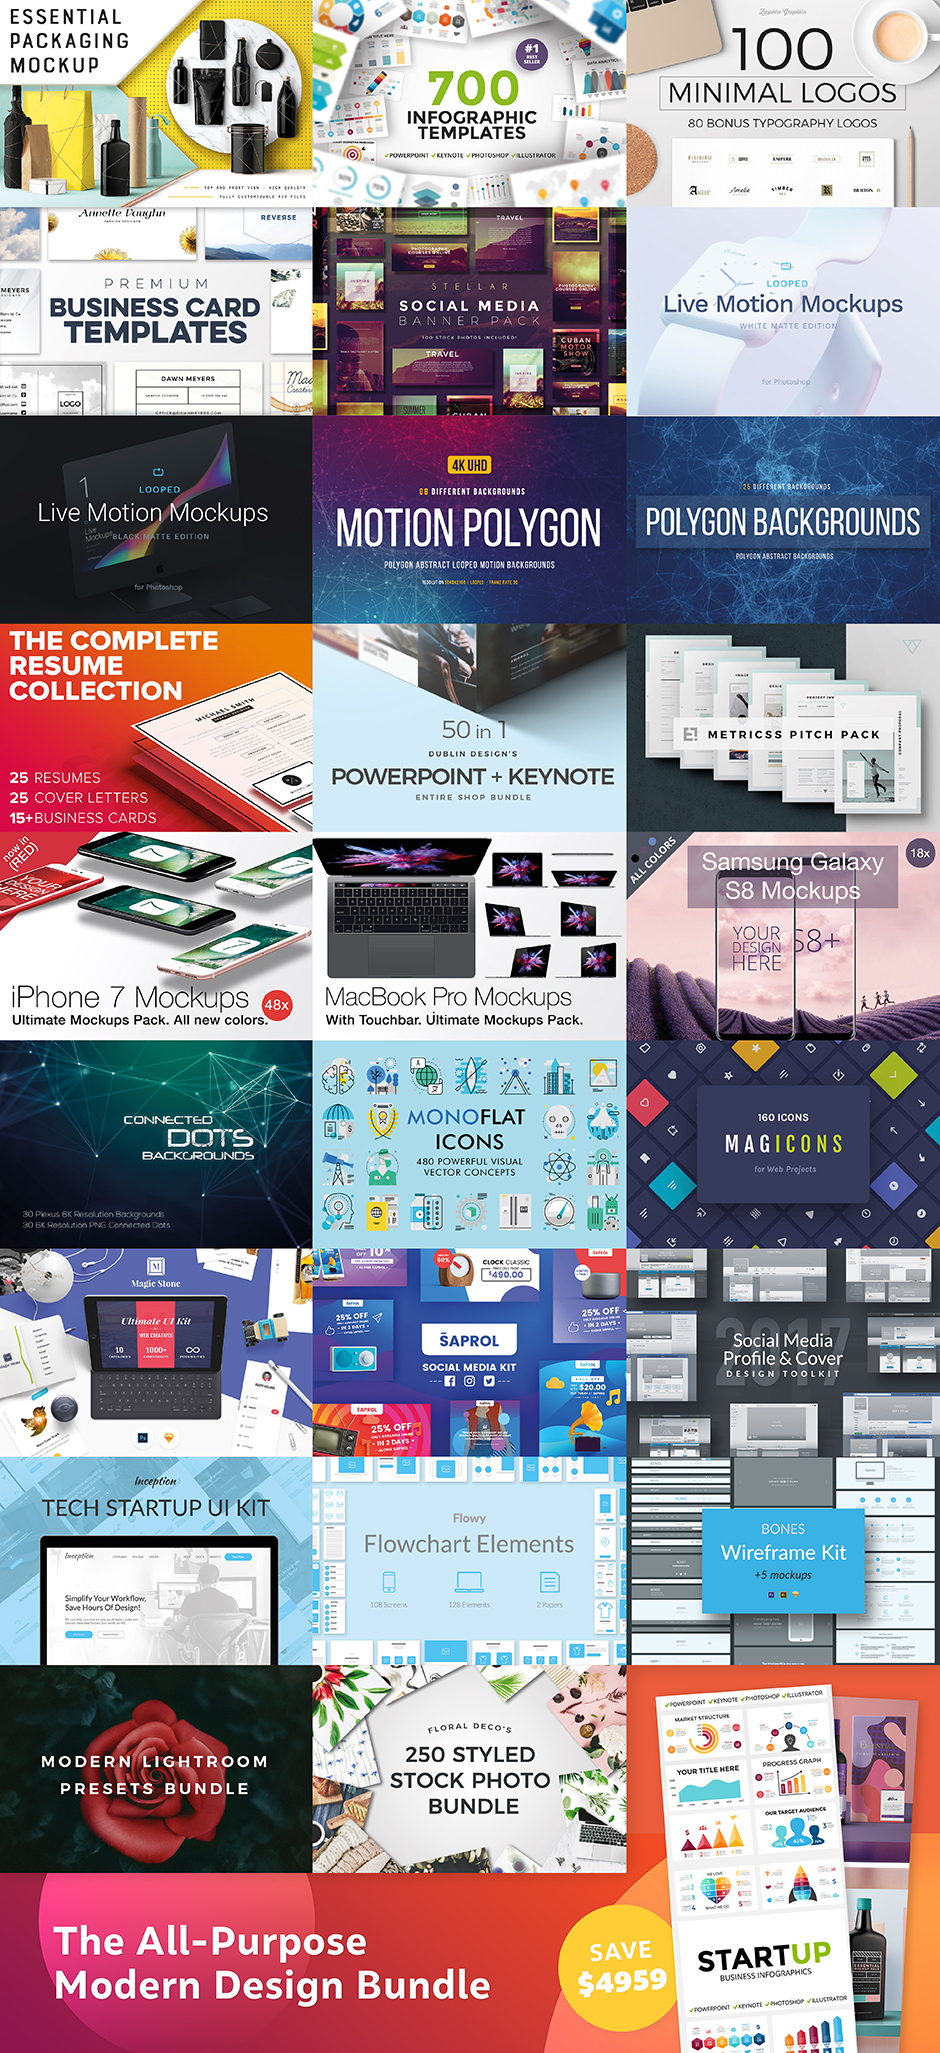 The All-Purpose Modern Design Bundle - Design Cuts